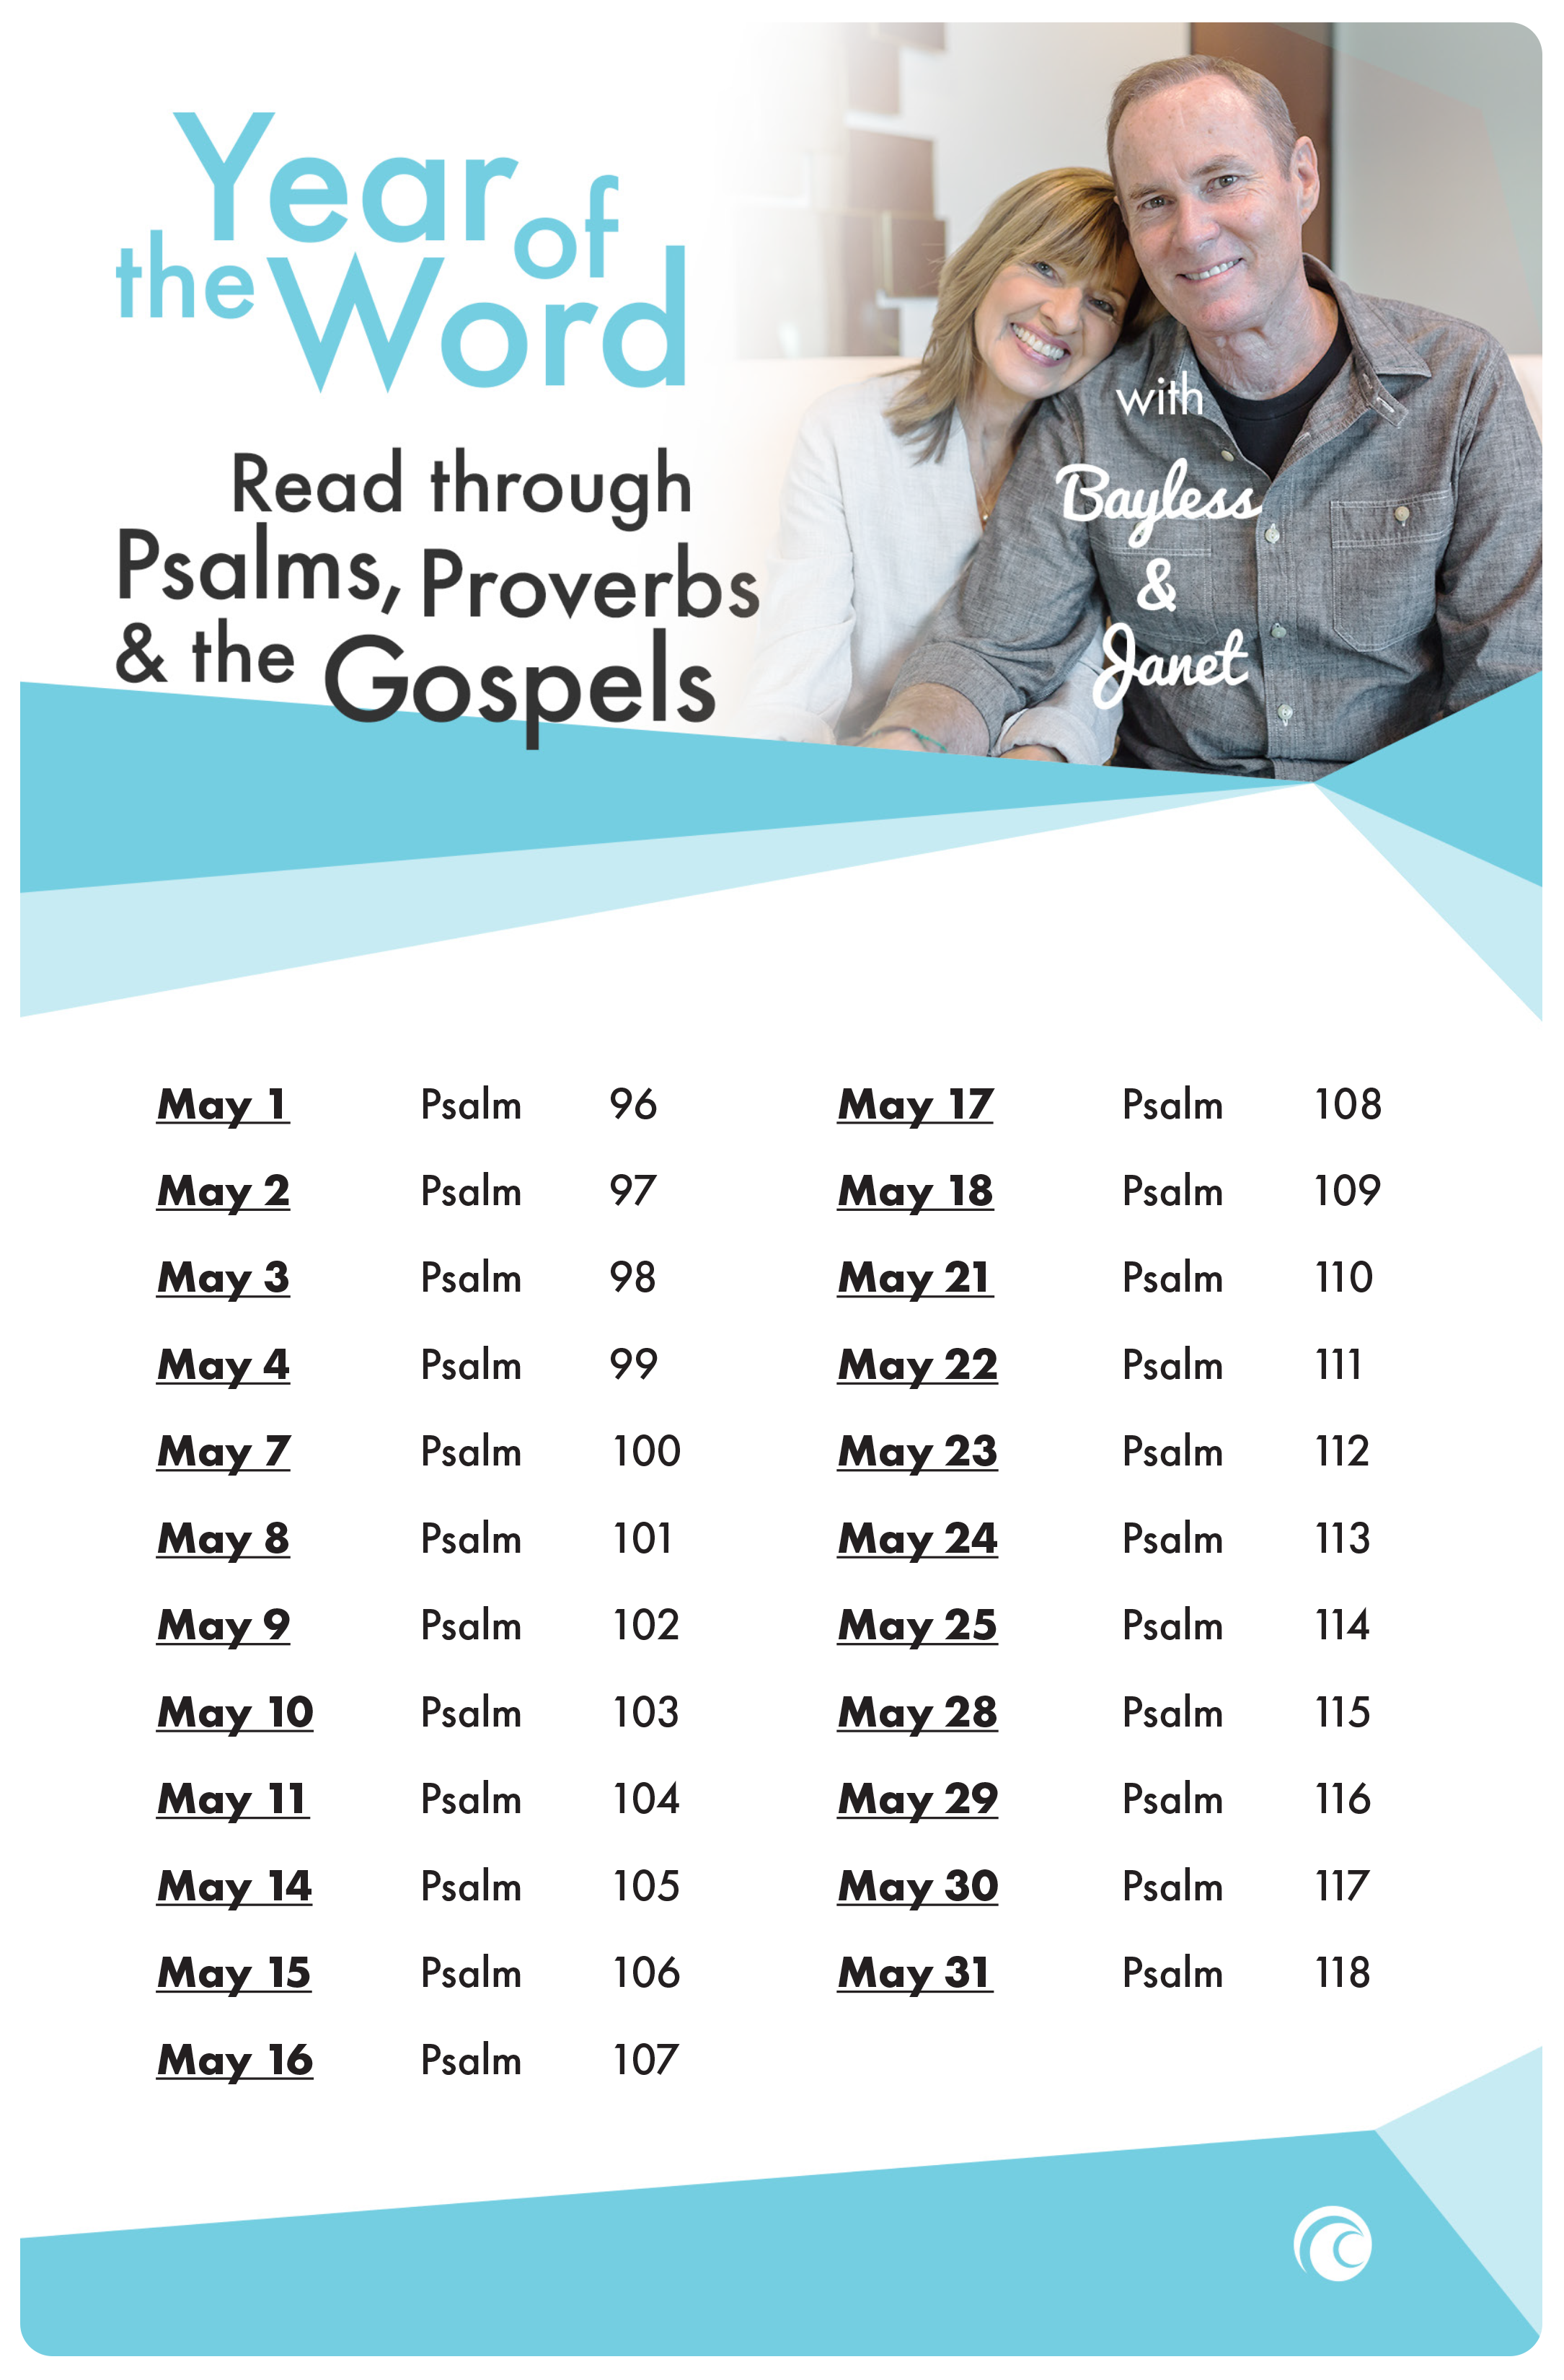 Pslams Proverbs and Gospels May 2018